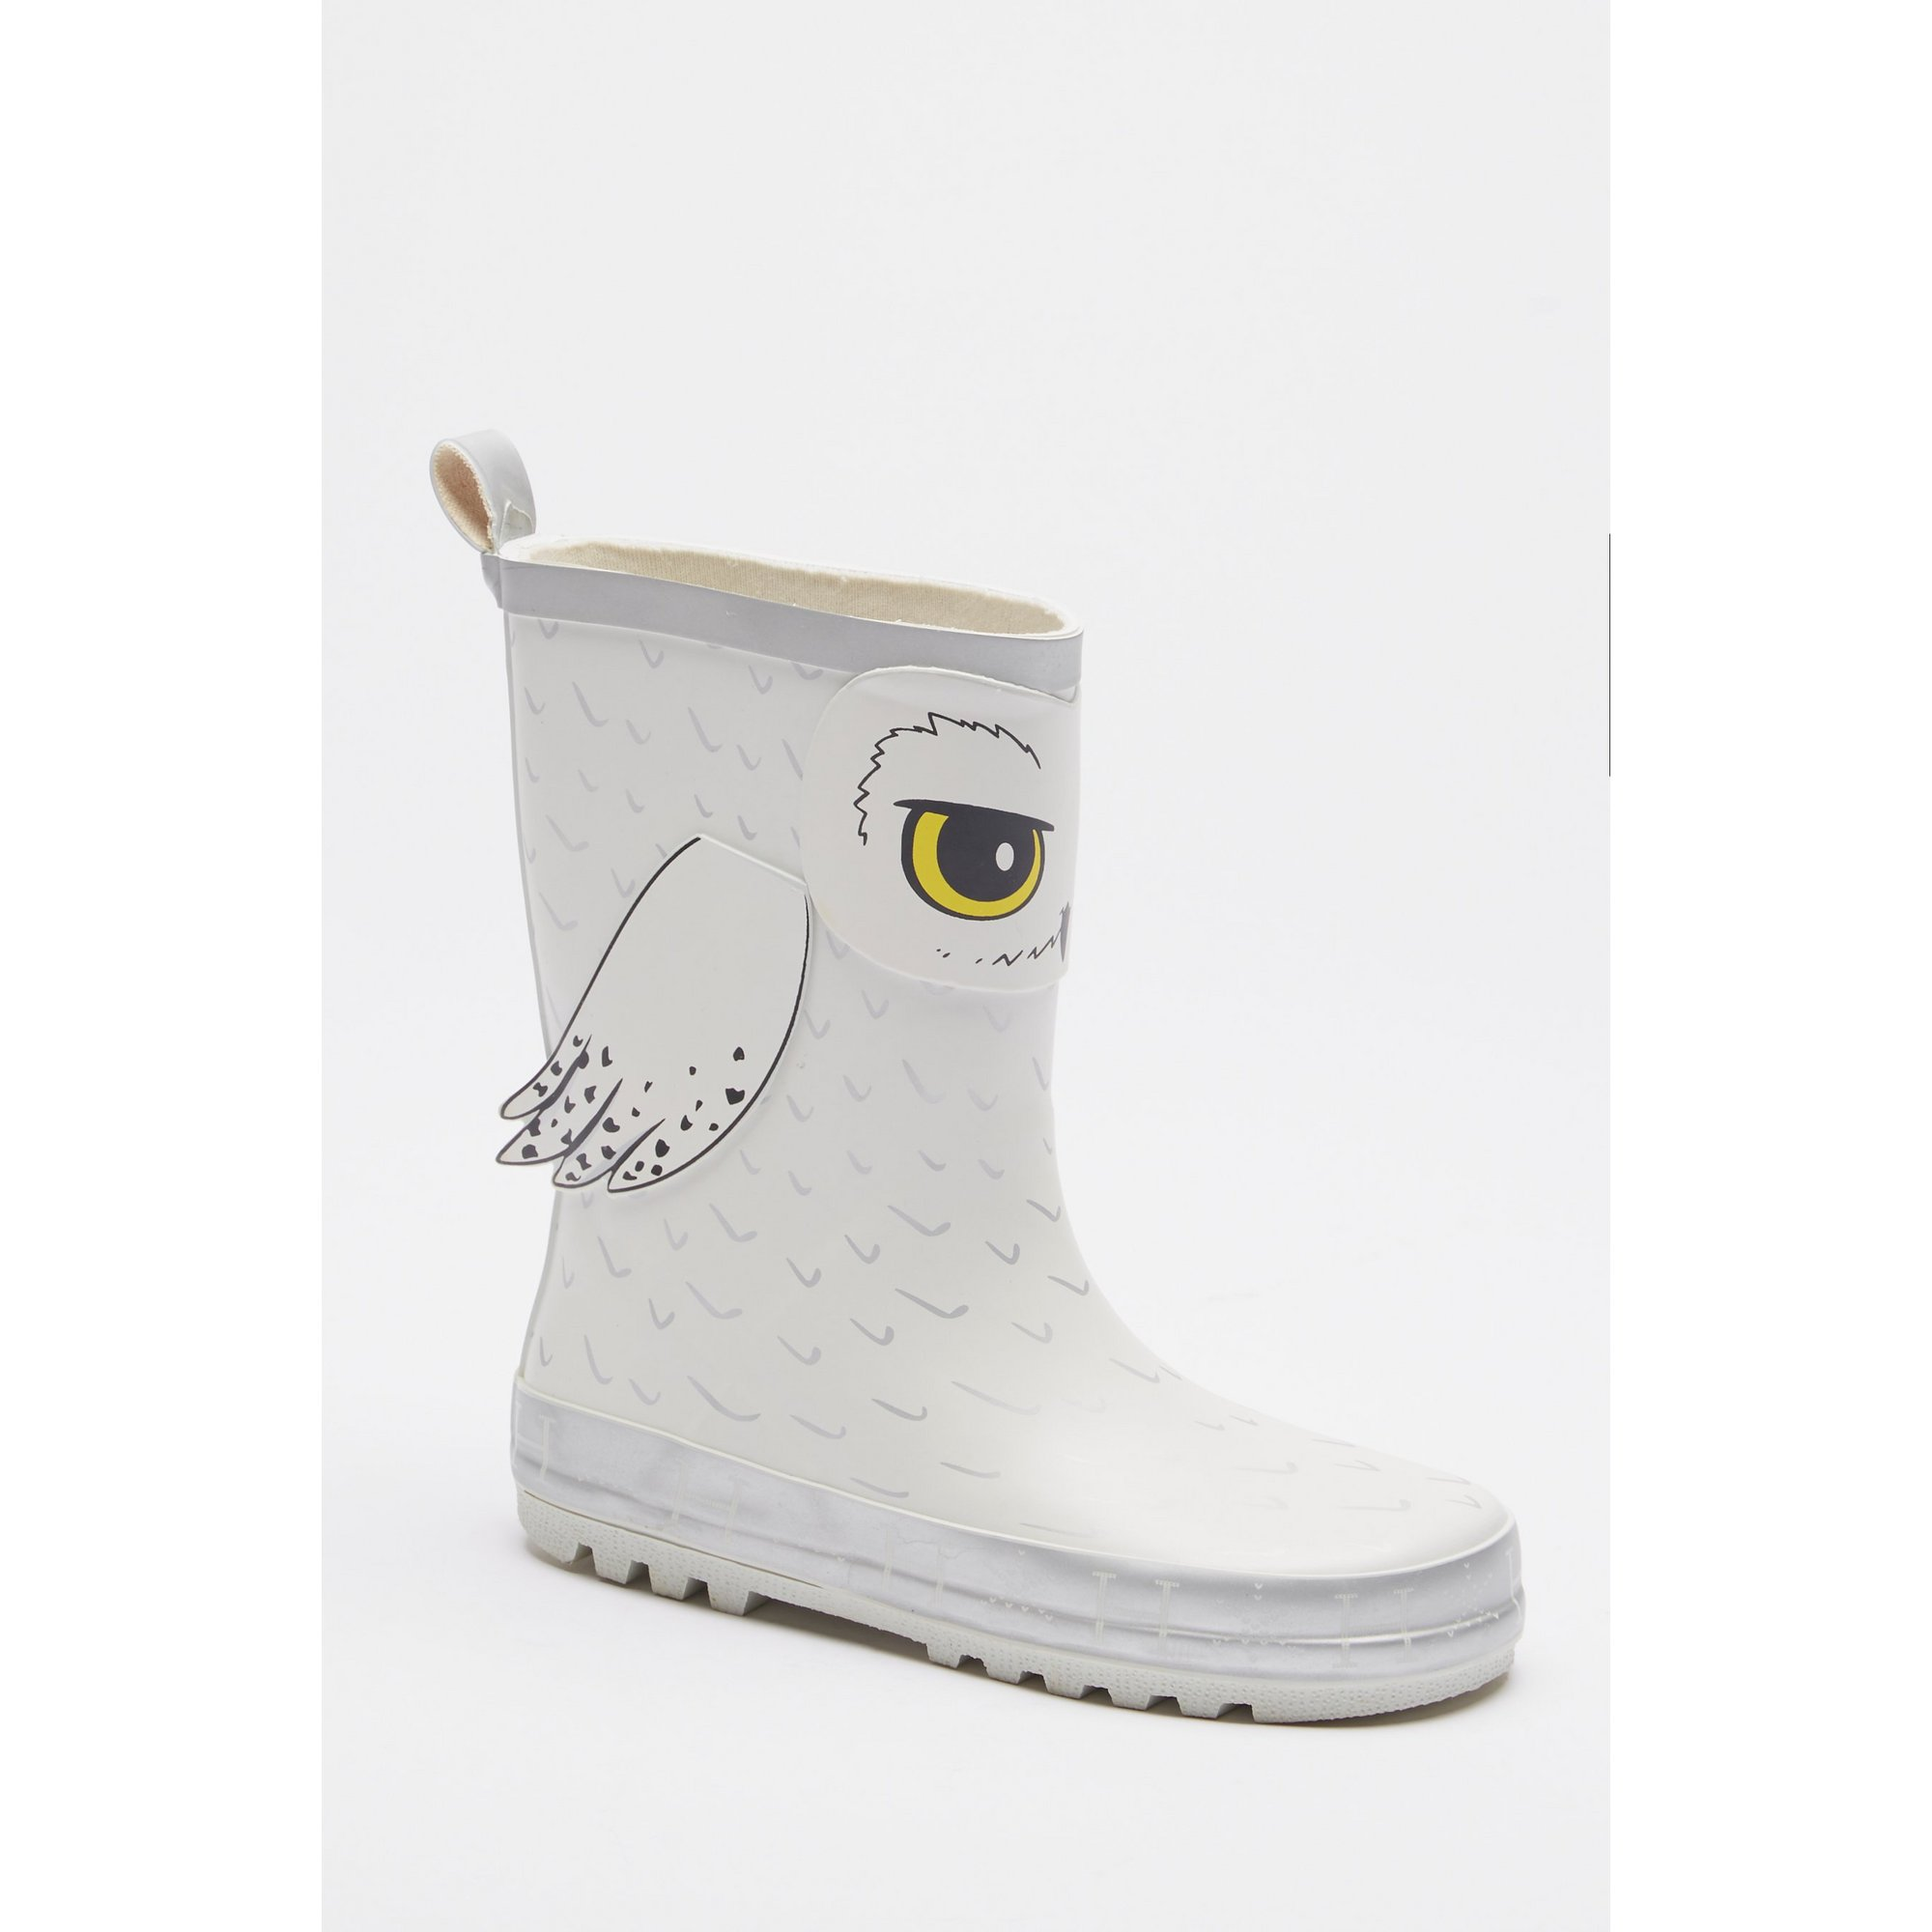 Image of Harry Potter Claw Wellies